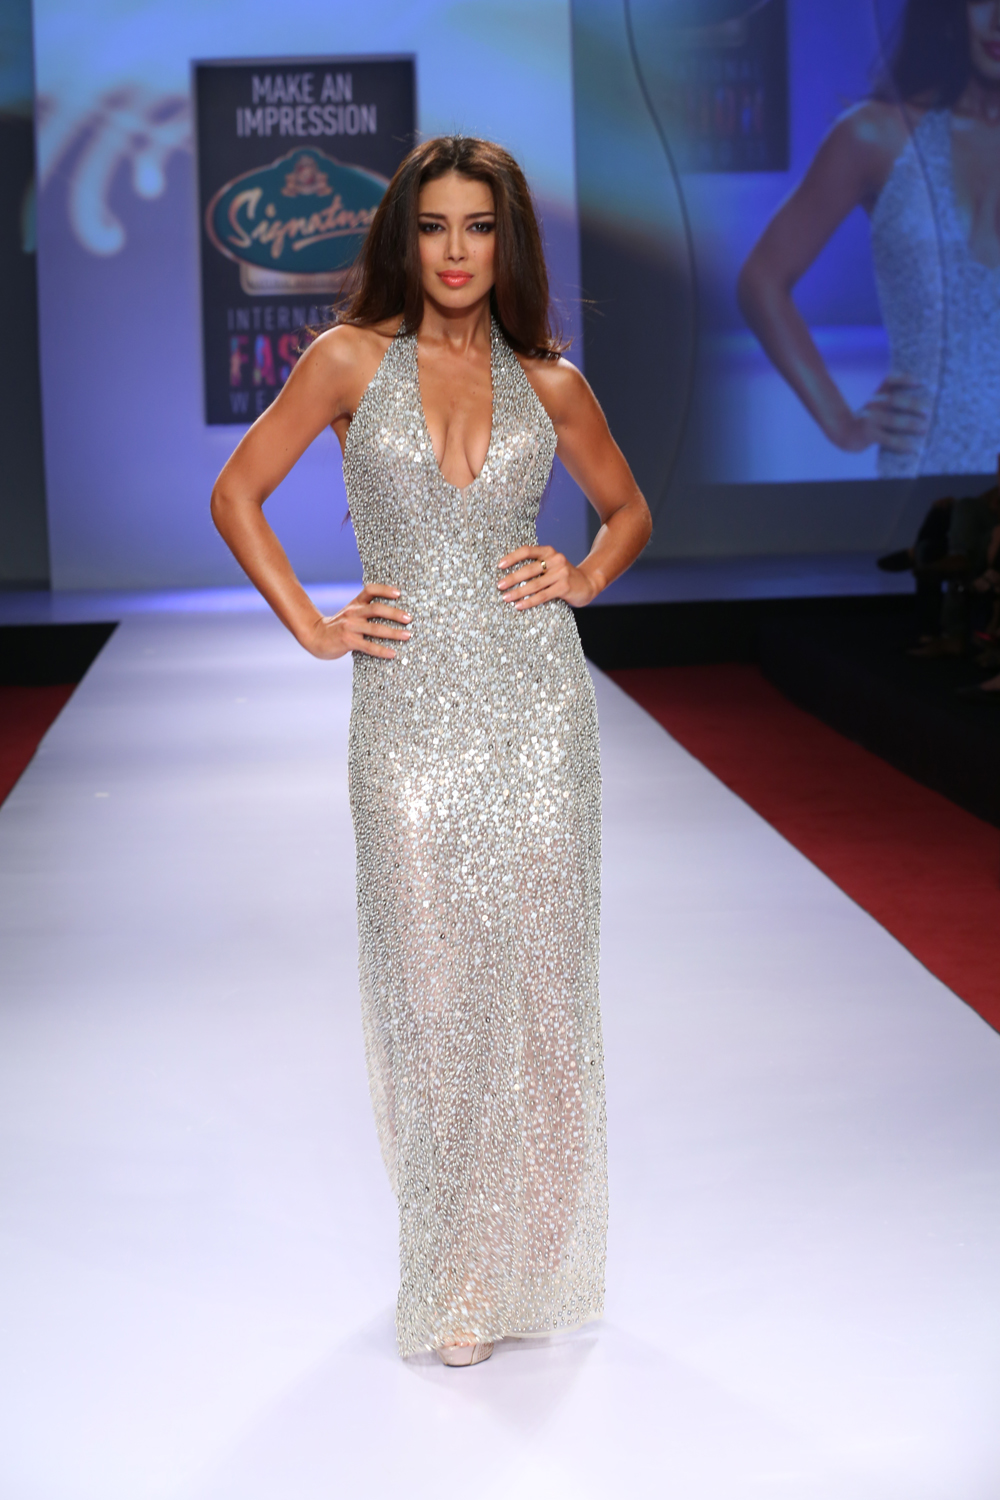 Miss Canada Universe 2012 Sahar Baniaz in a slinky sequined silver gown with a gravity defying neckline.